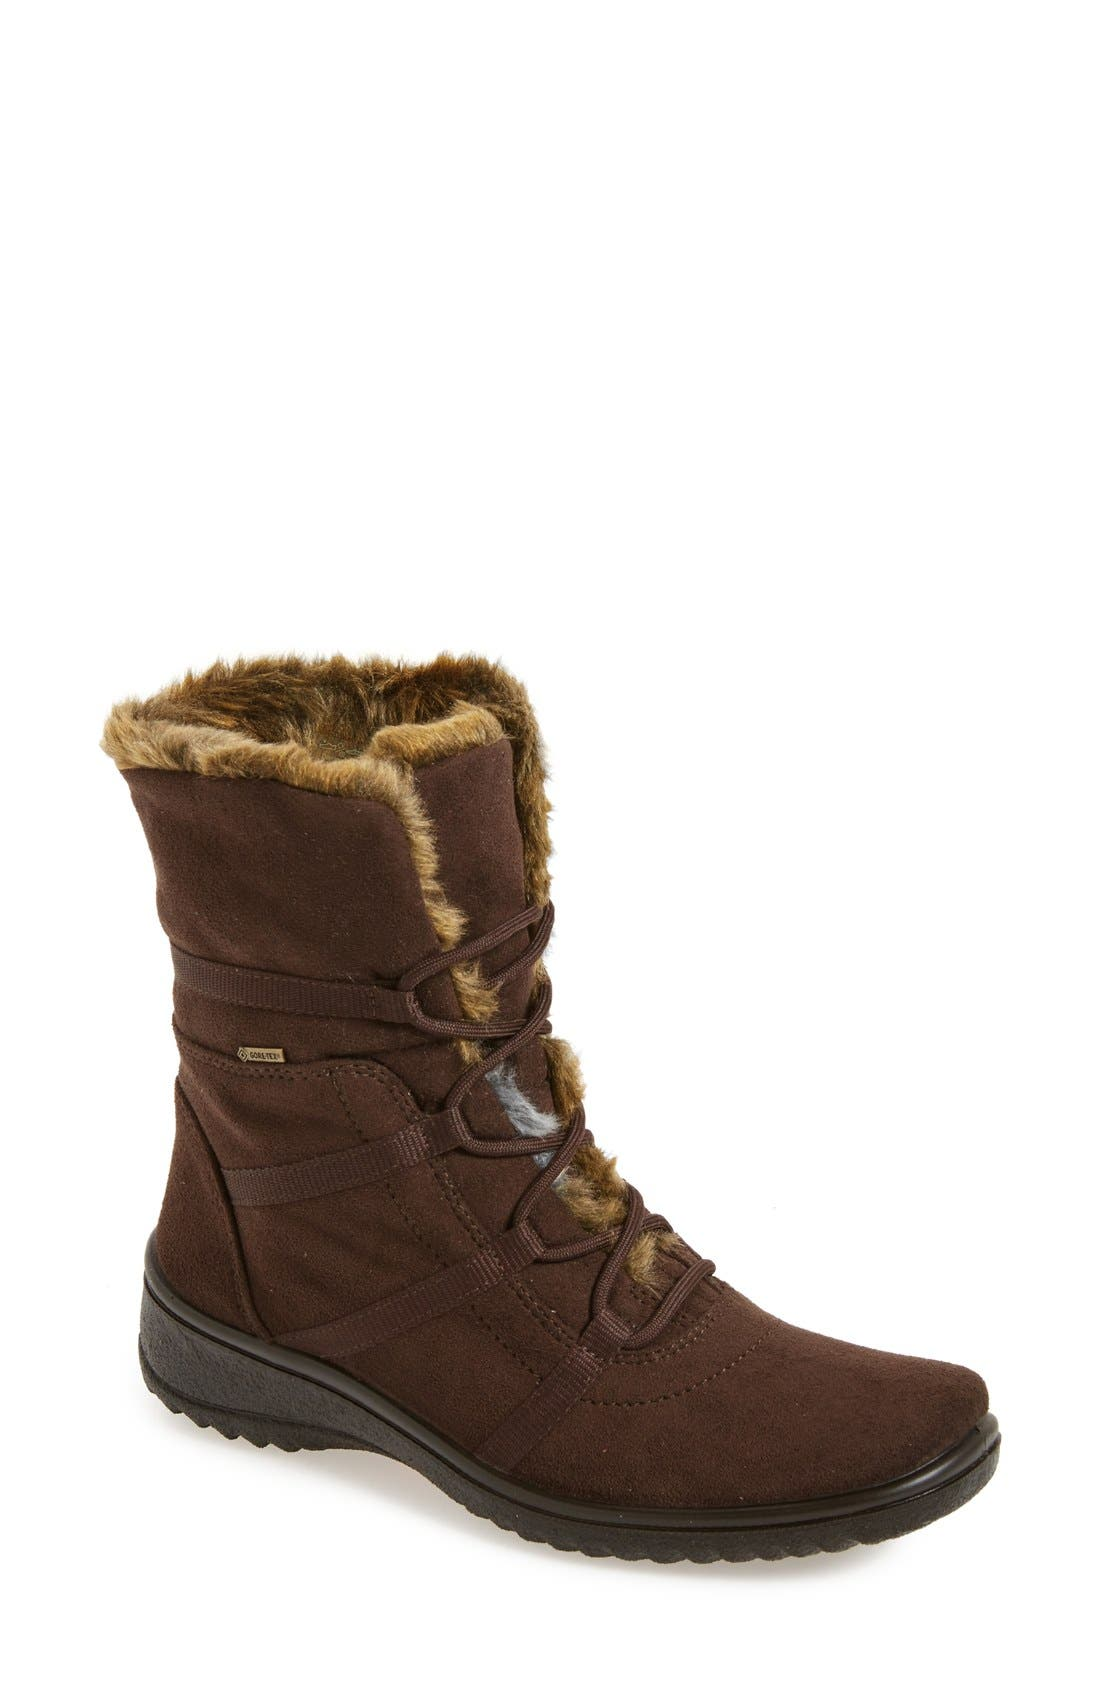 'Magaly' Waterproof Gore-Tex<sup>®</sup> Faux Fur Boot,                         Main,                         color, Brown Fabric